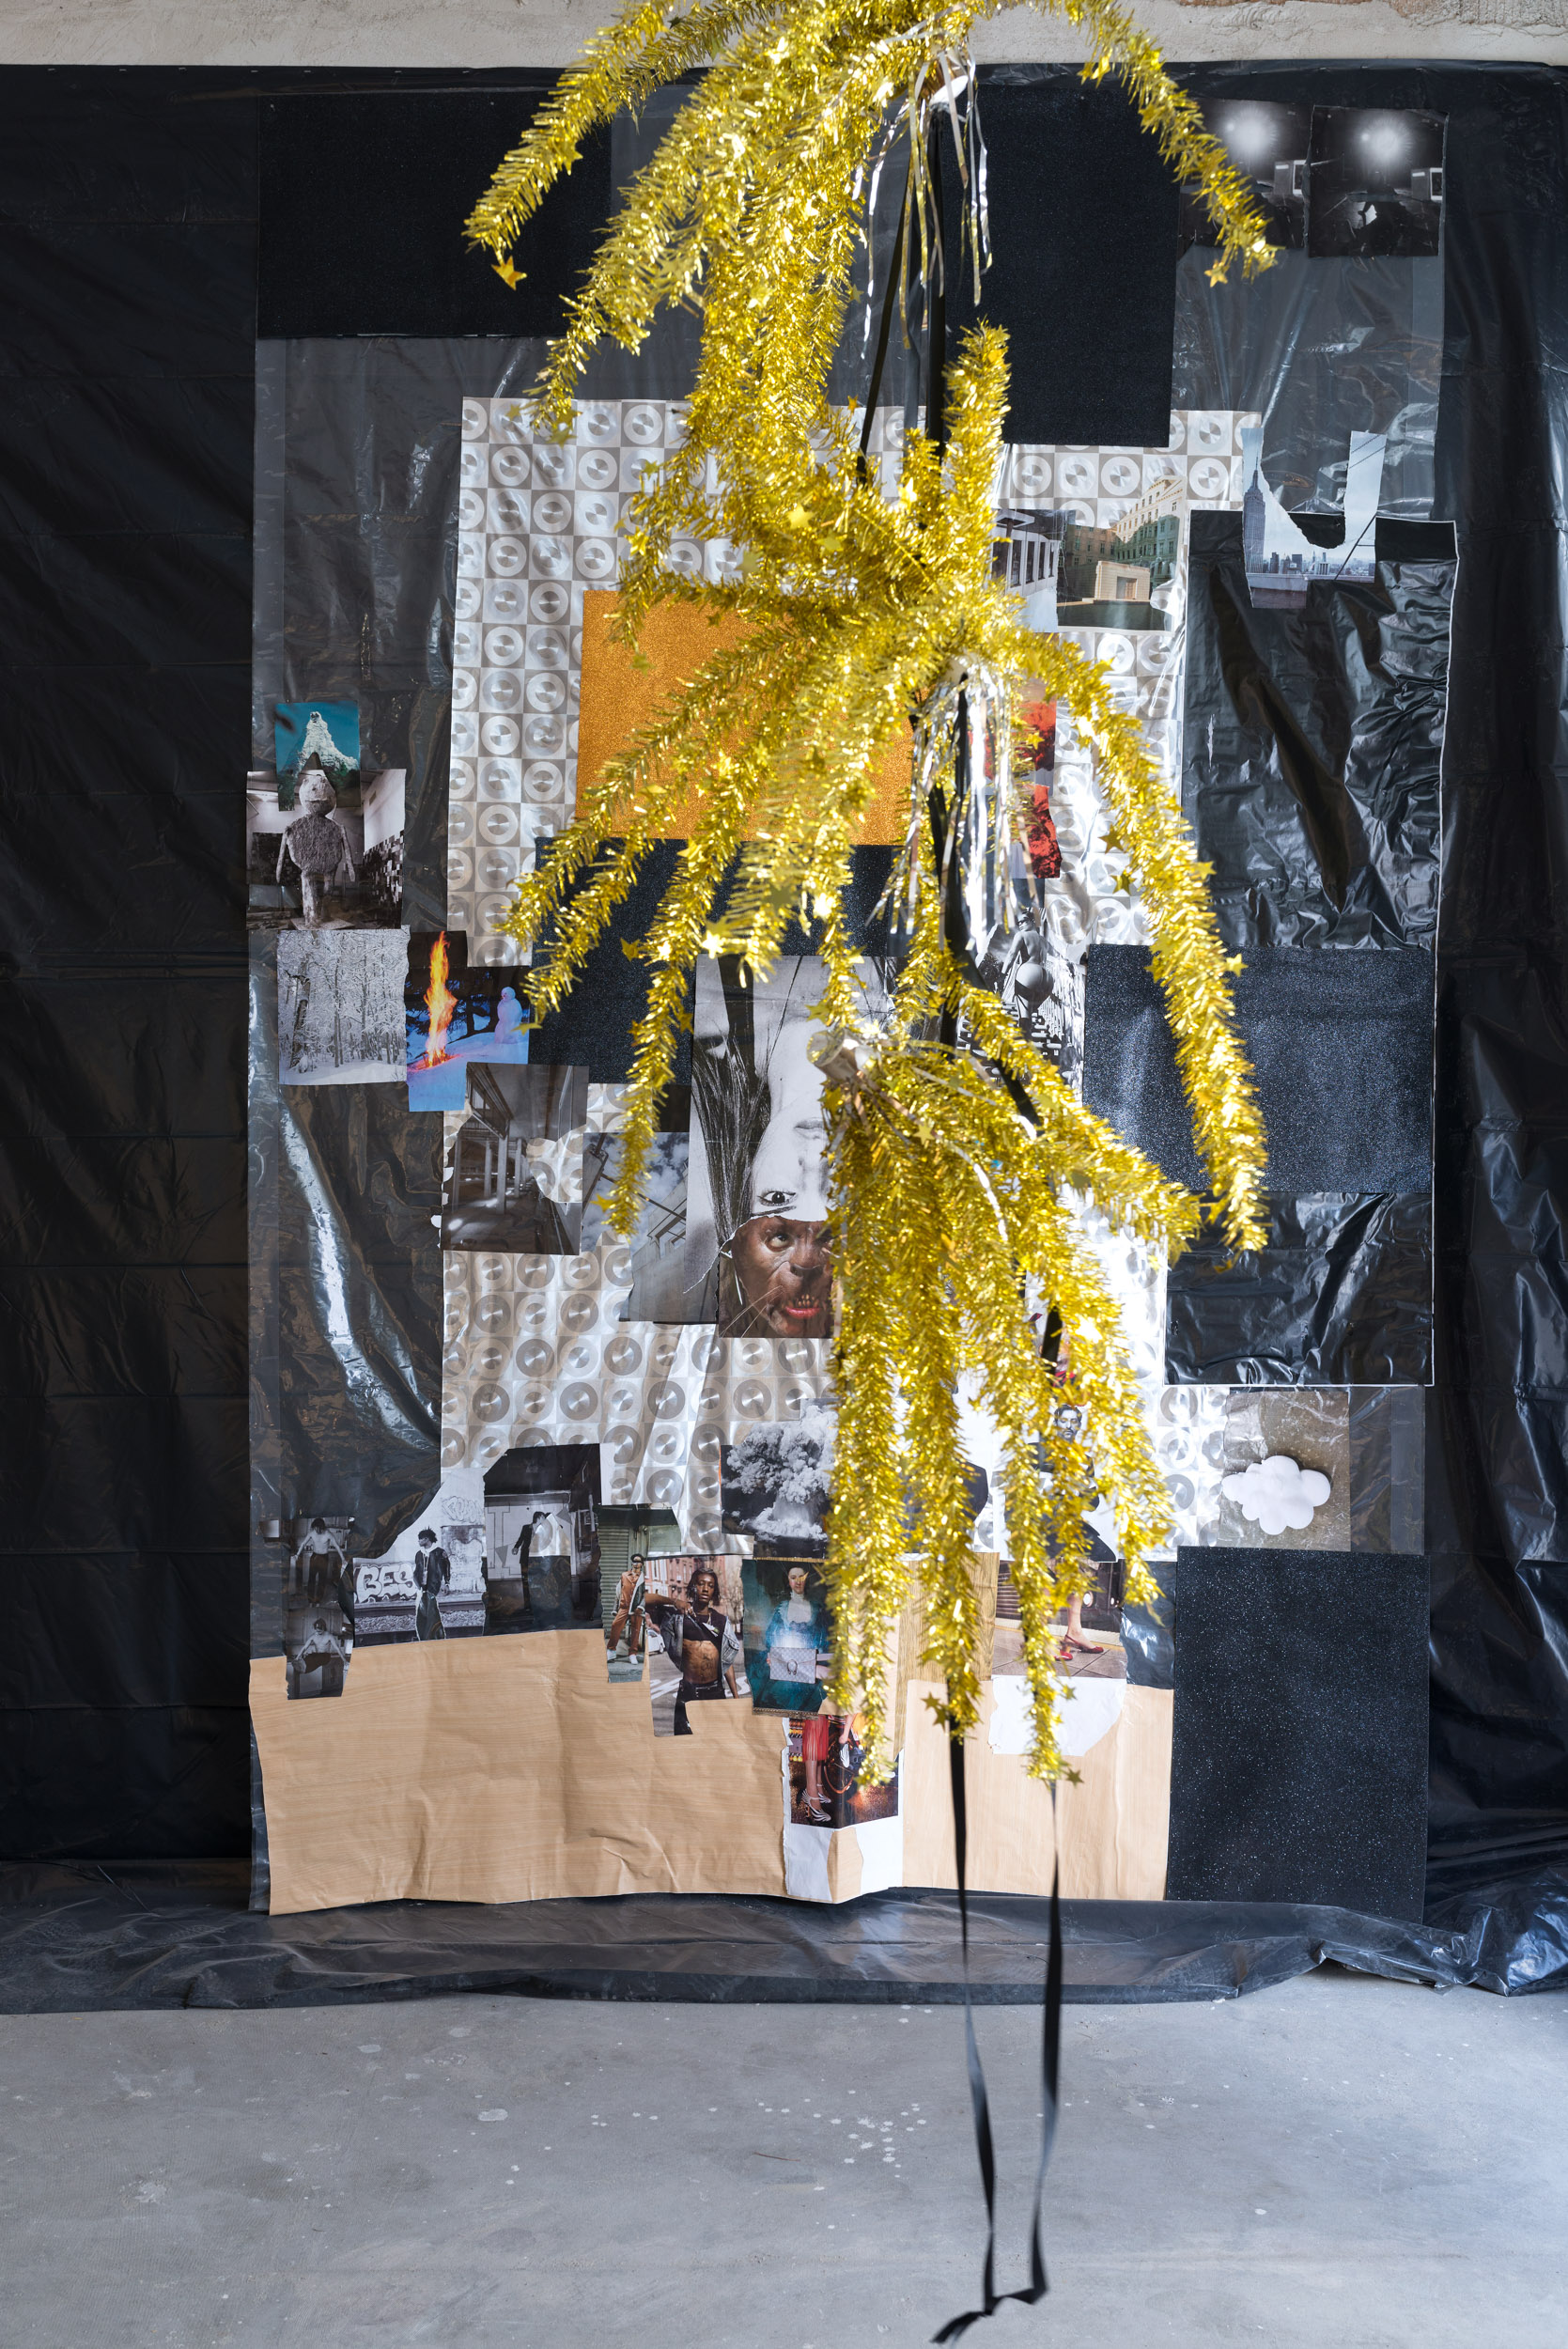 Jacqueline Fraser  THE MAKING OF A MOST VIOLENT YEAR 2017  2017 Collage on plastic sheeting, black plastic sheeting, 'tinsel' decorations & ribbon. Dimensions variable